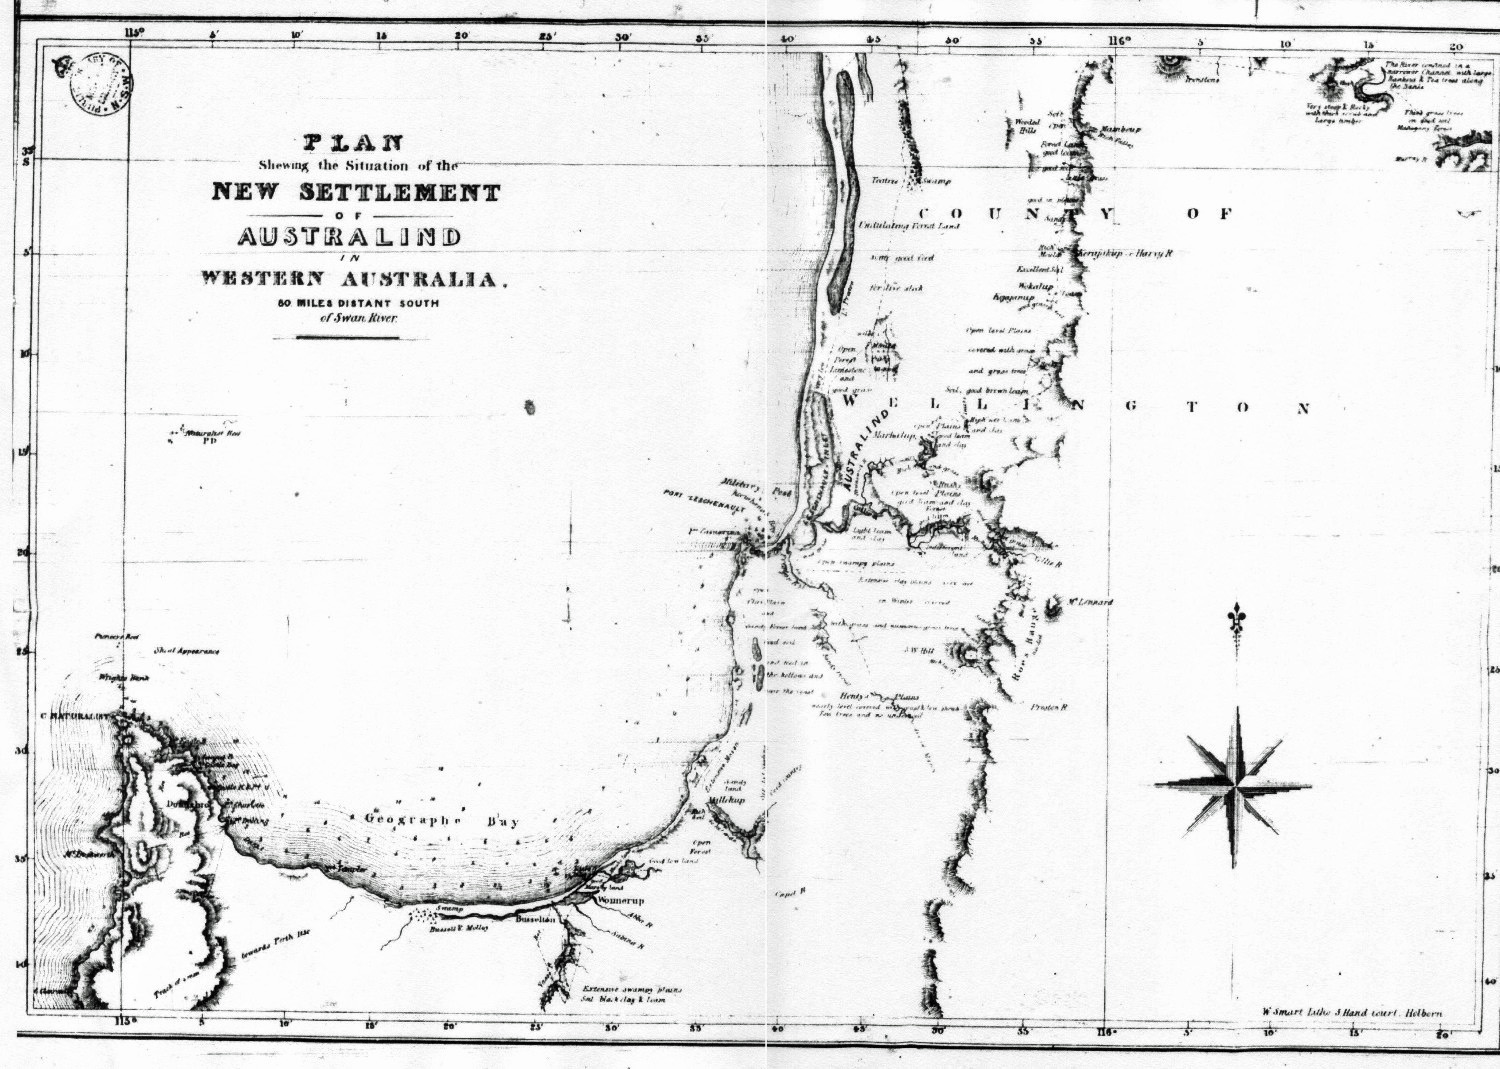 Western Australia Comprising A Description Of The Vicinity Of - Map of us drawn by australian